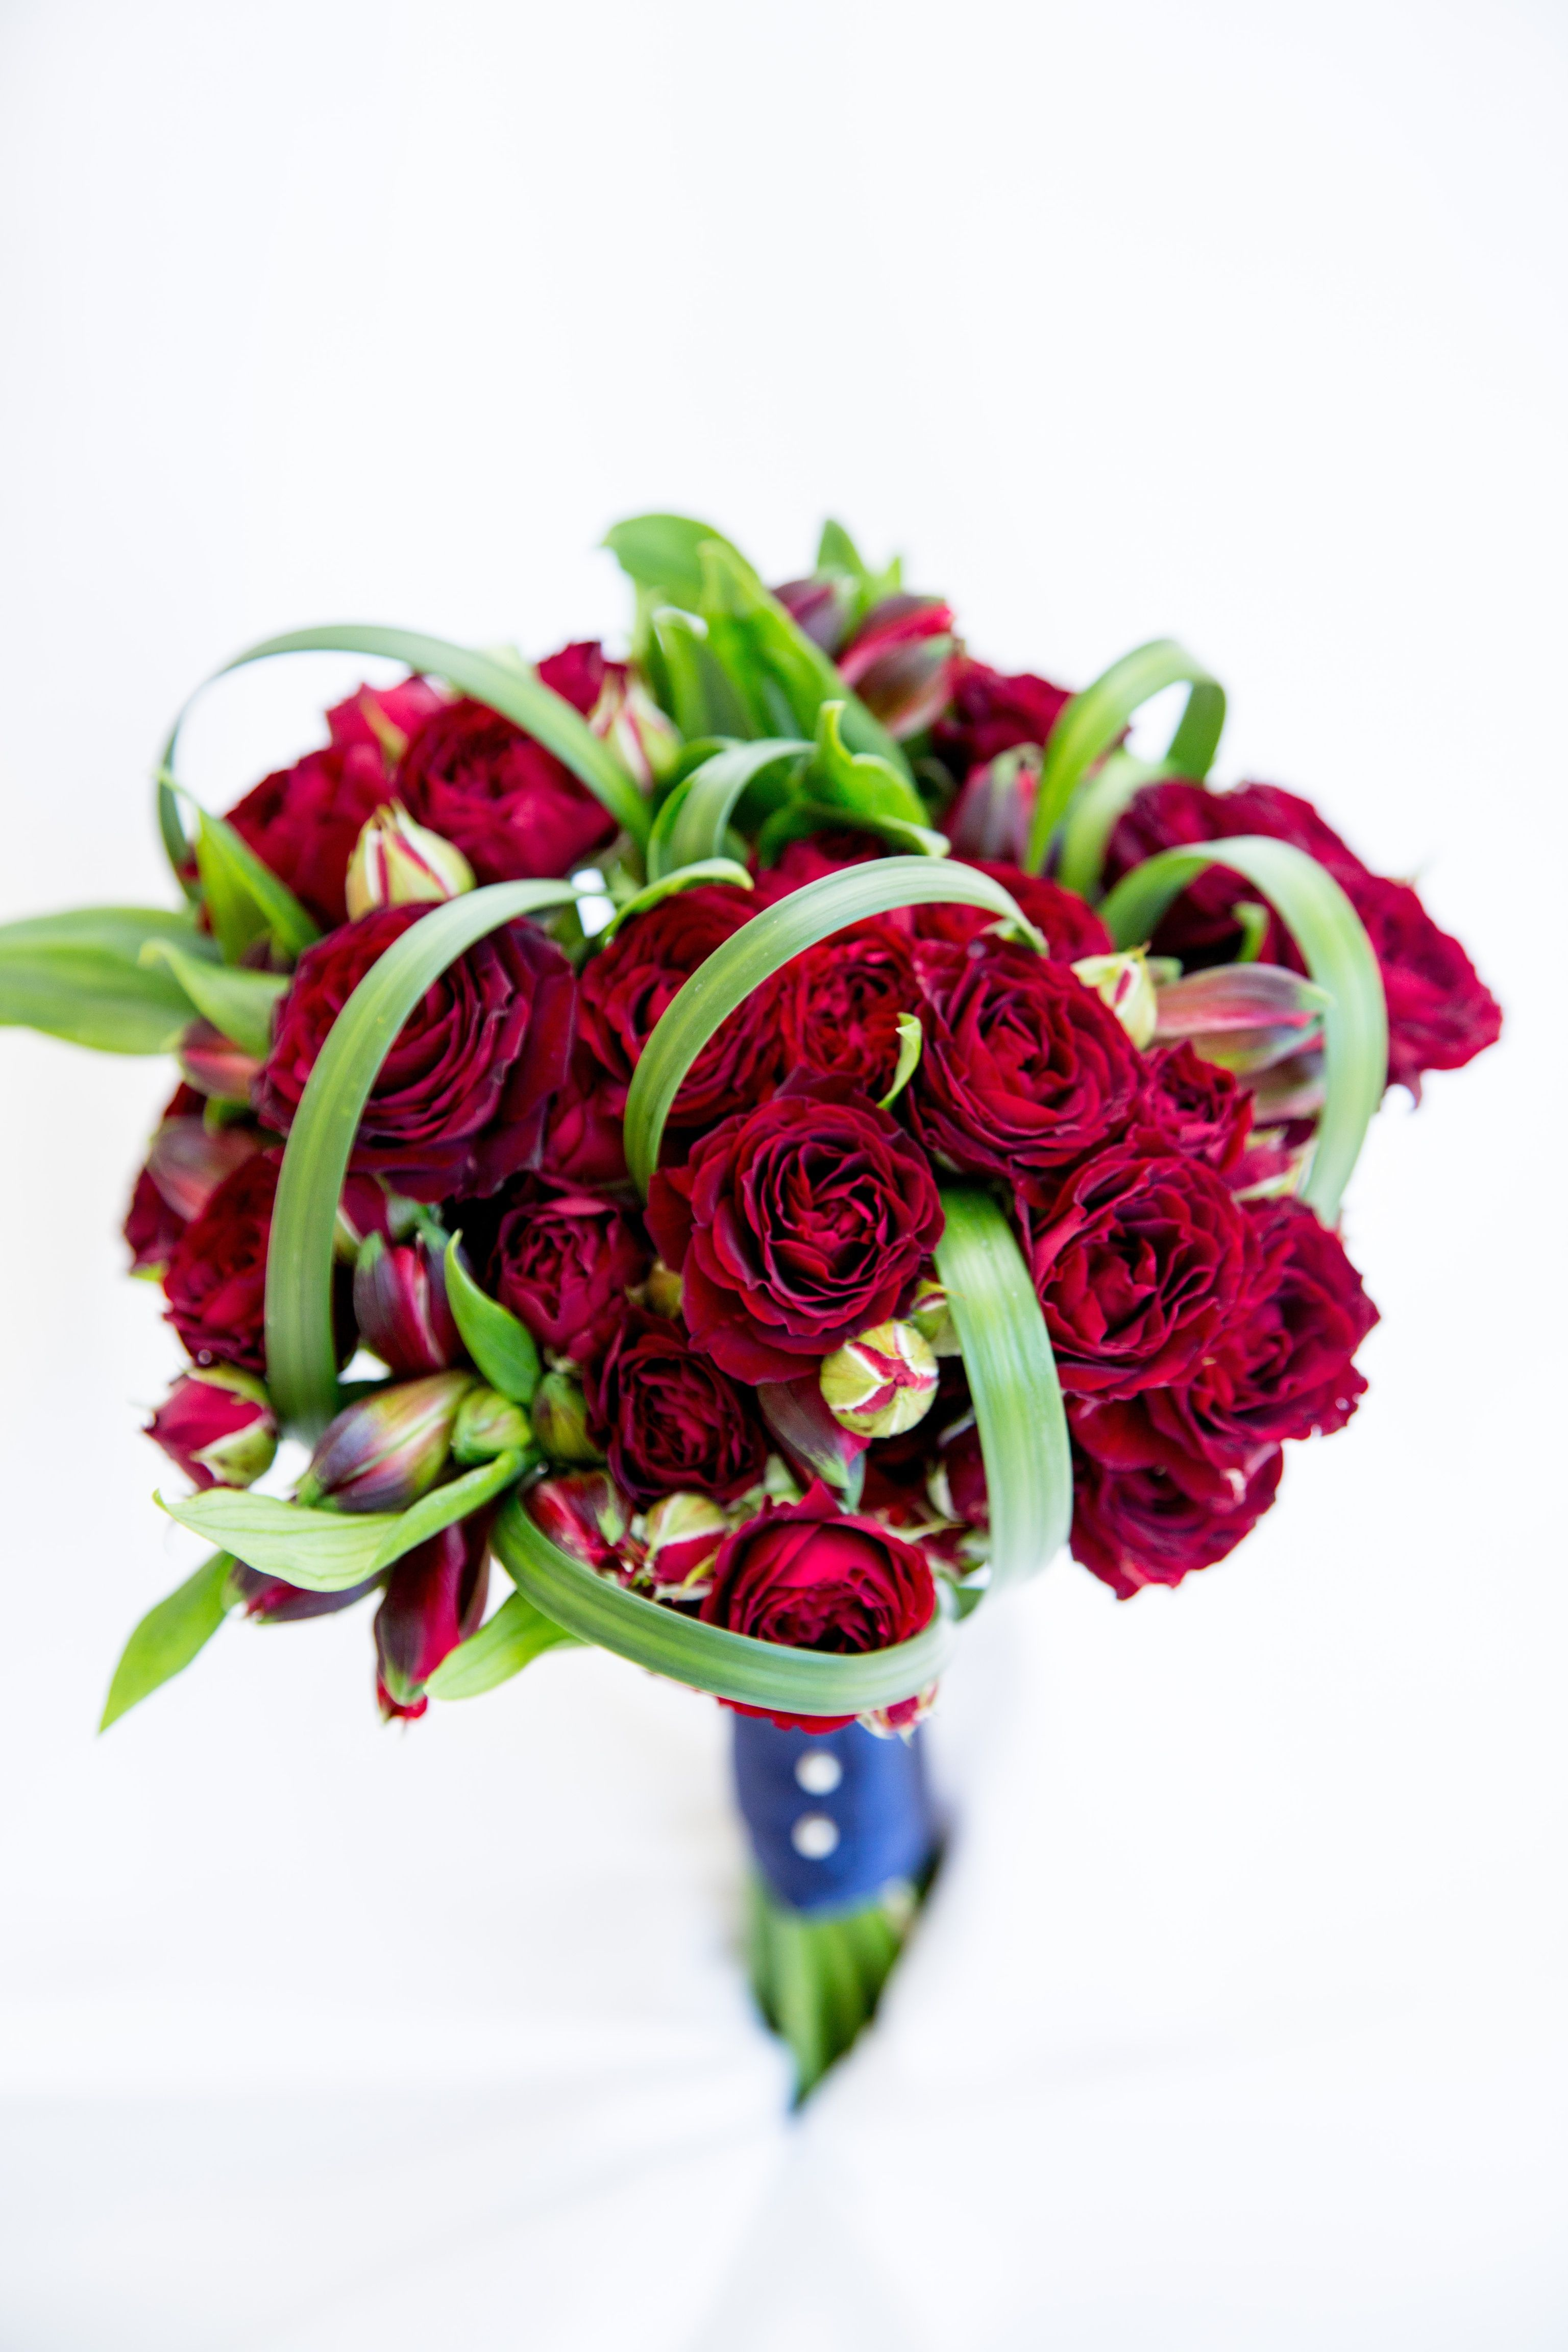 Red rose bridal bouquet red spray piano friel rose red red rose bridal bouquet red spray piano friel rose red alstroemeria and lily grass dhlflorist Gallery